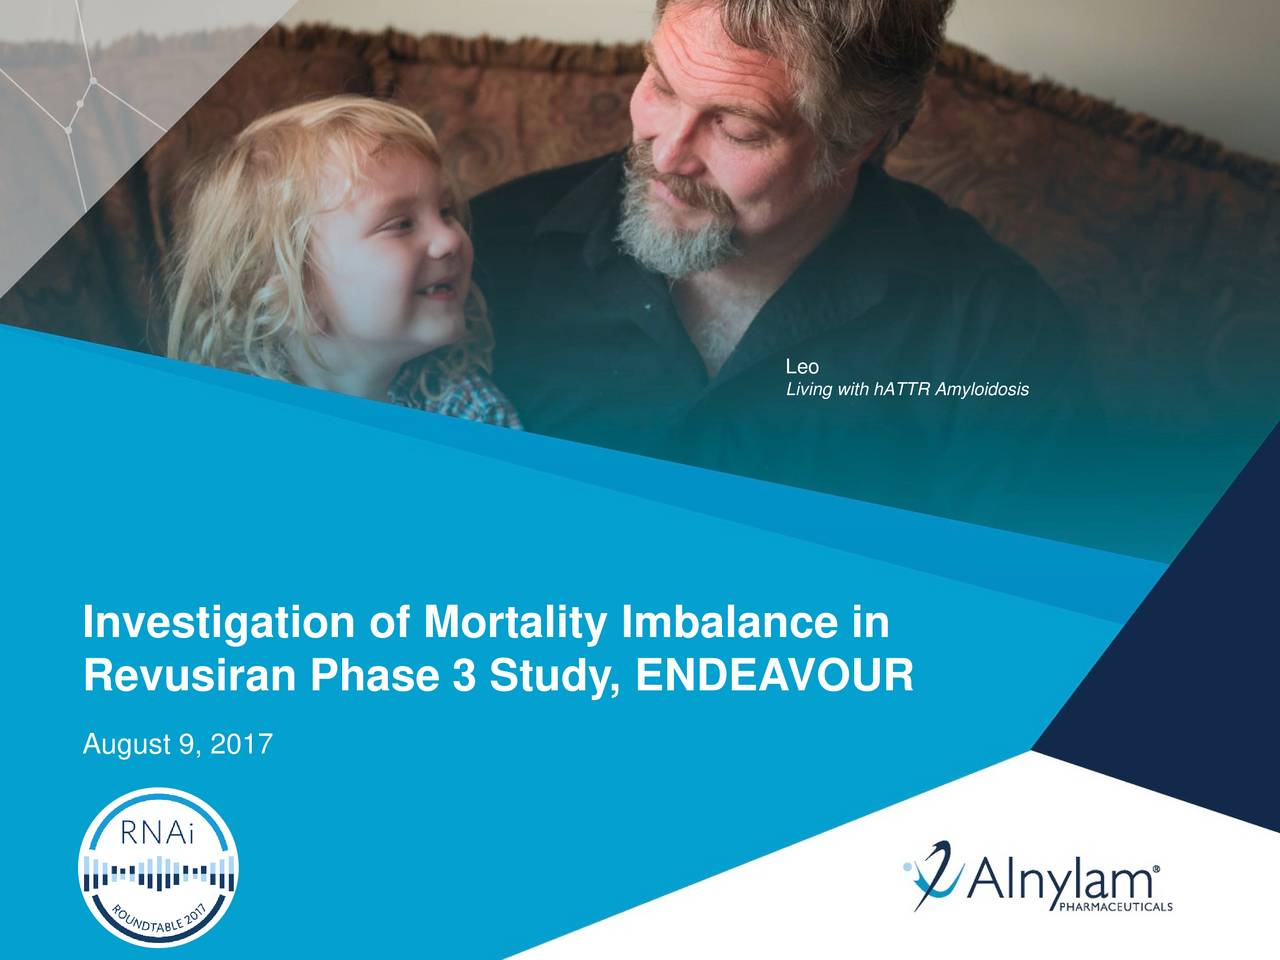 Living with hATTR Amyloidosis Investigation of Mortality Imbalance in Revusiran Phase 3 Study, ENDEAVOUR August 9, 2017